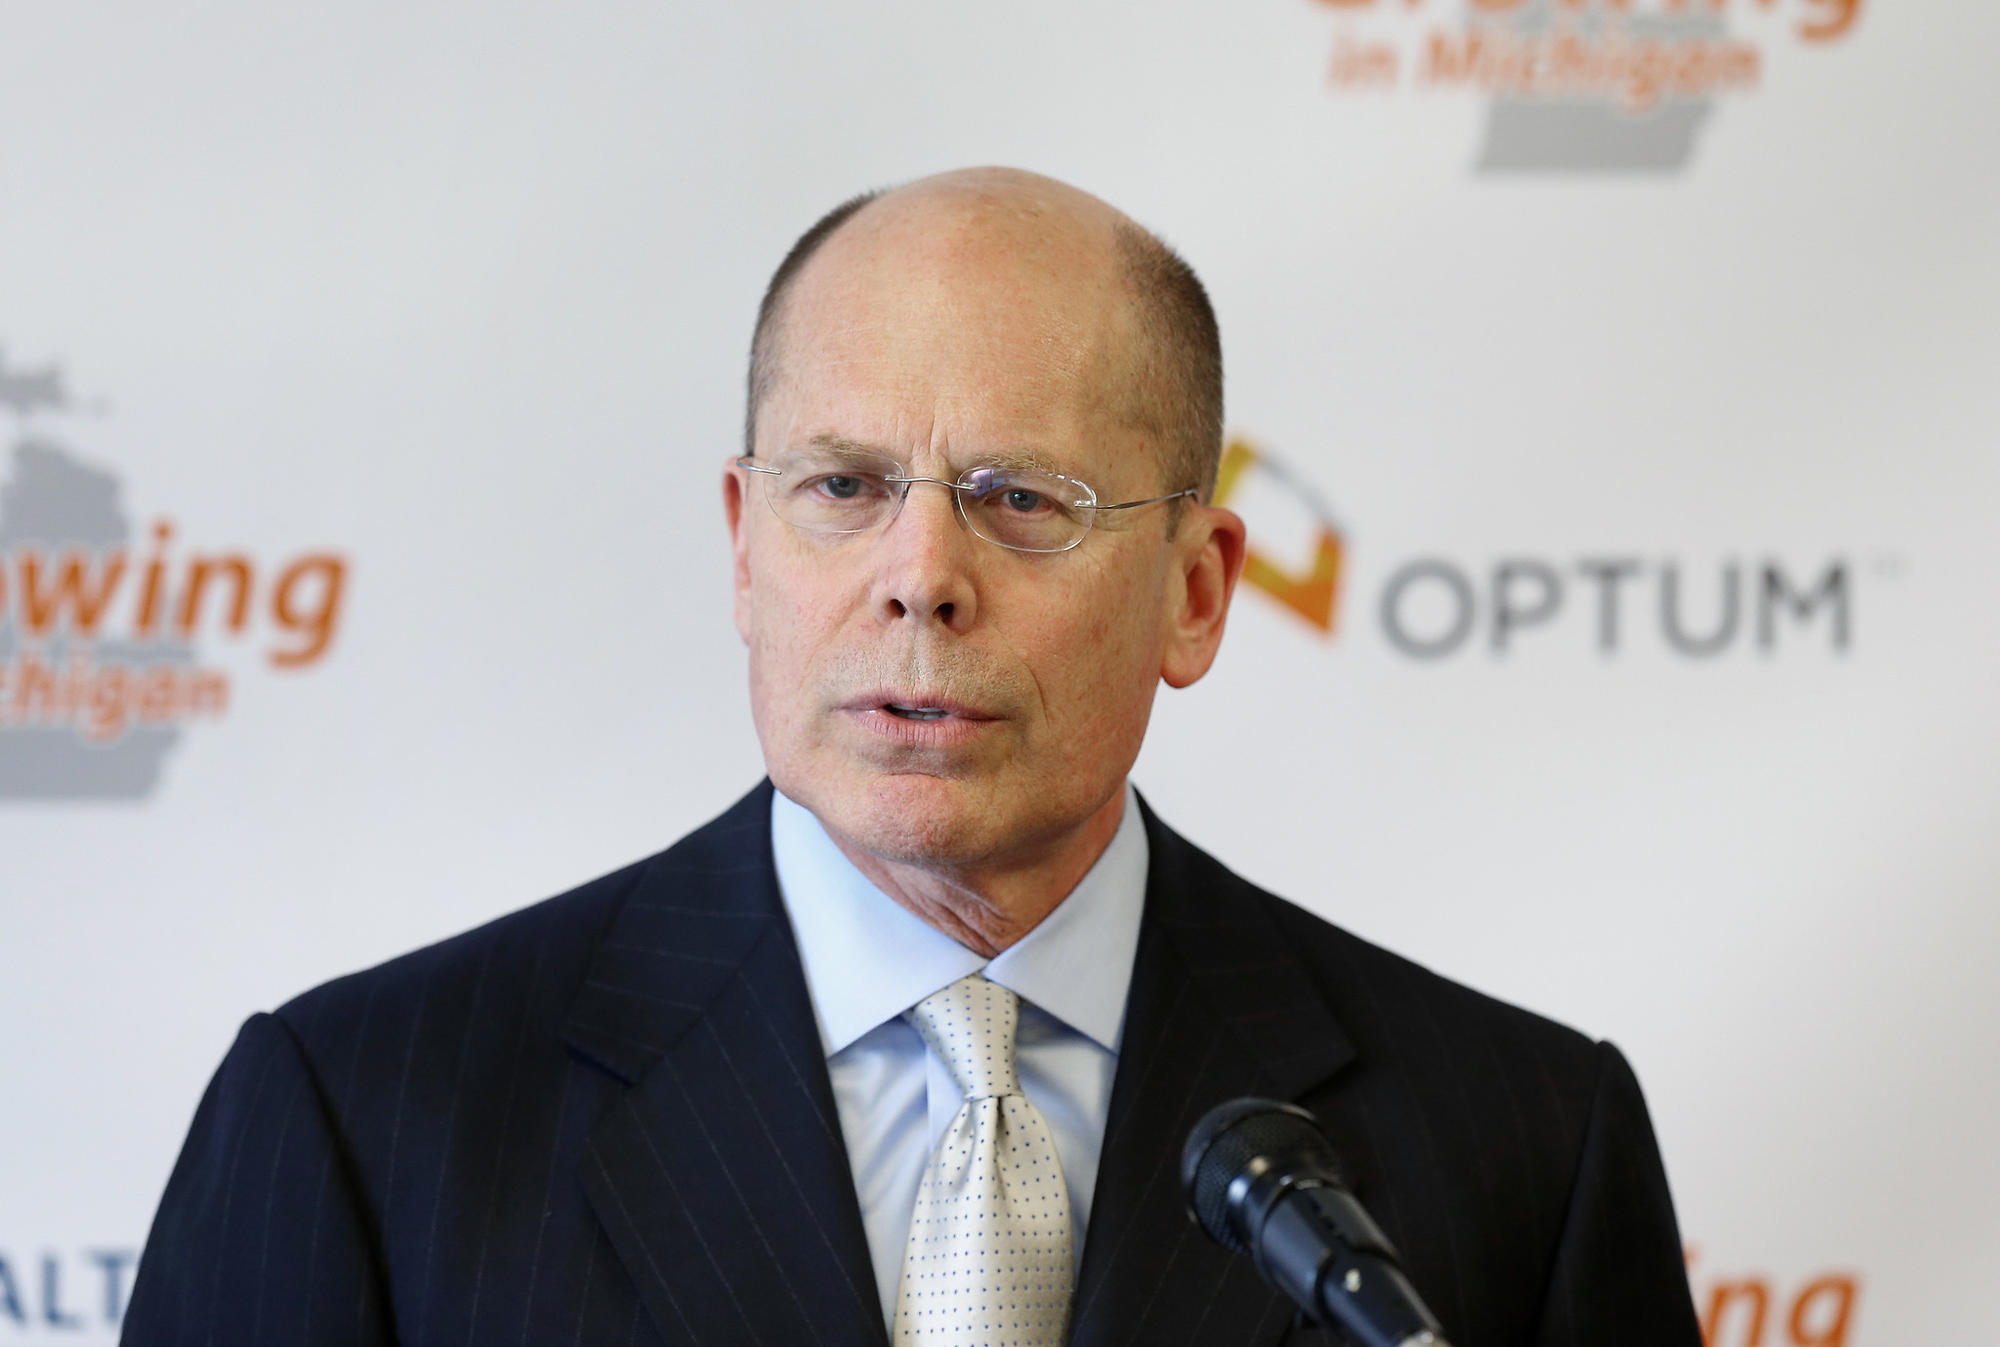 UnitedHealth CEO Stephen Hemsley, who announced Tuesday that his company will withdraw from ACA exchanges across the nation, seen here in 2014.